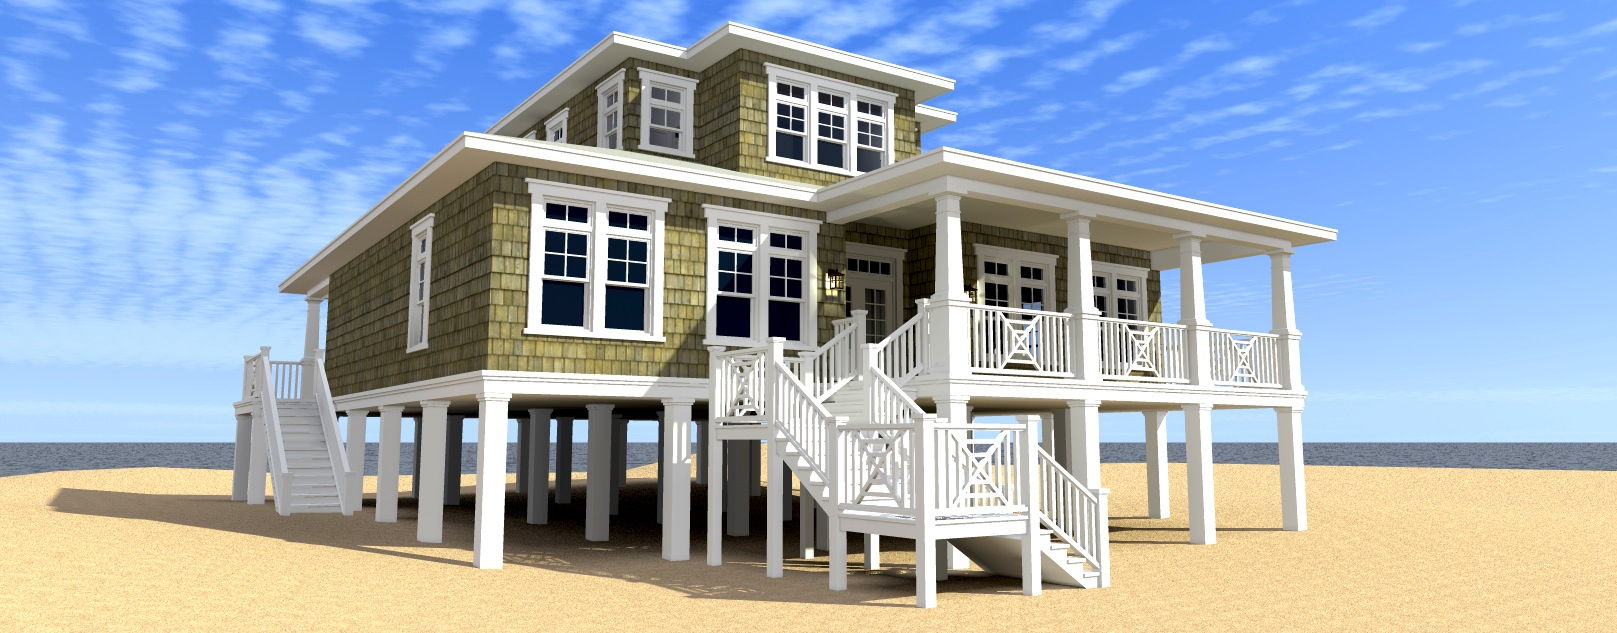 Scuppers house plan tyree house plans for Coastal house floor plans